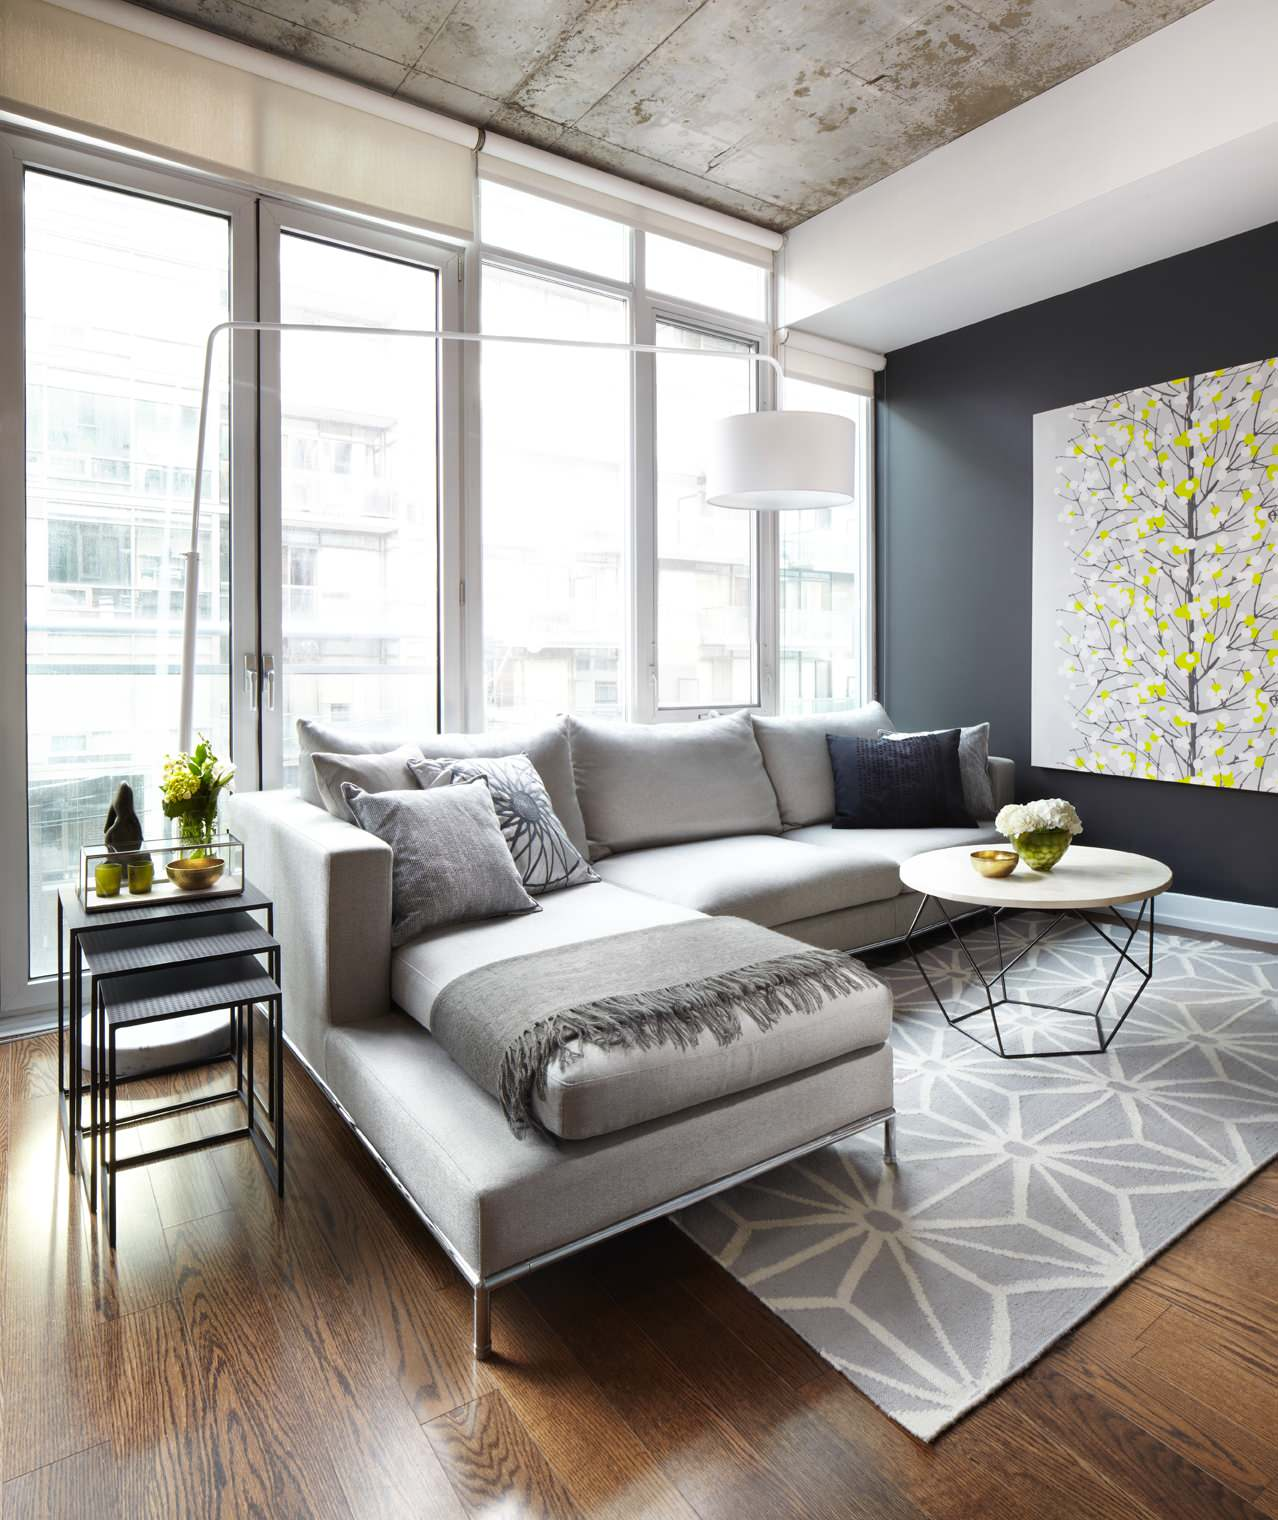 75 Beautiful Gray Living Room Pictures Ideas April 2021 Houzz